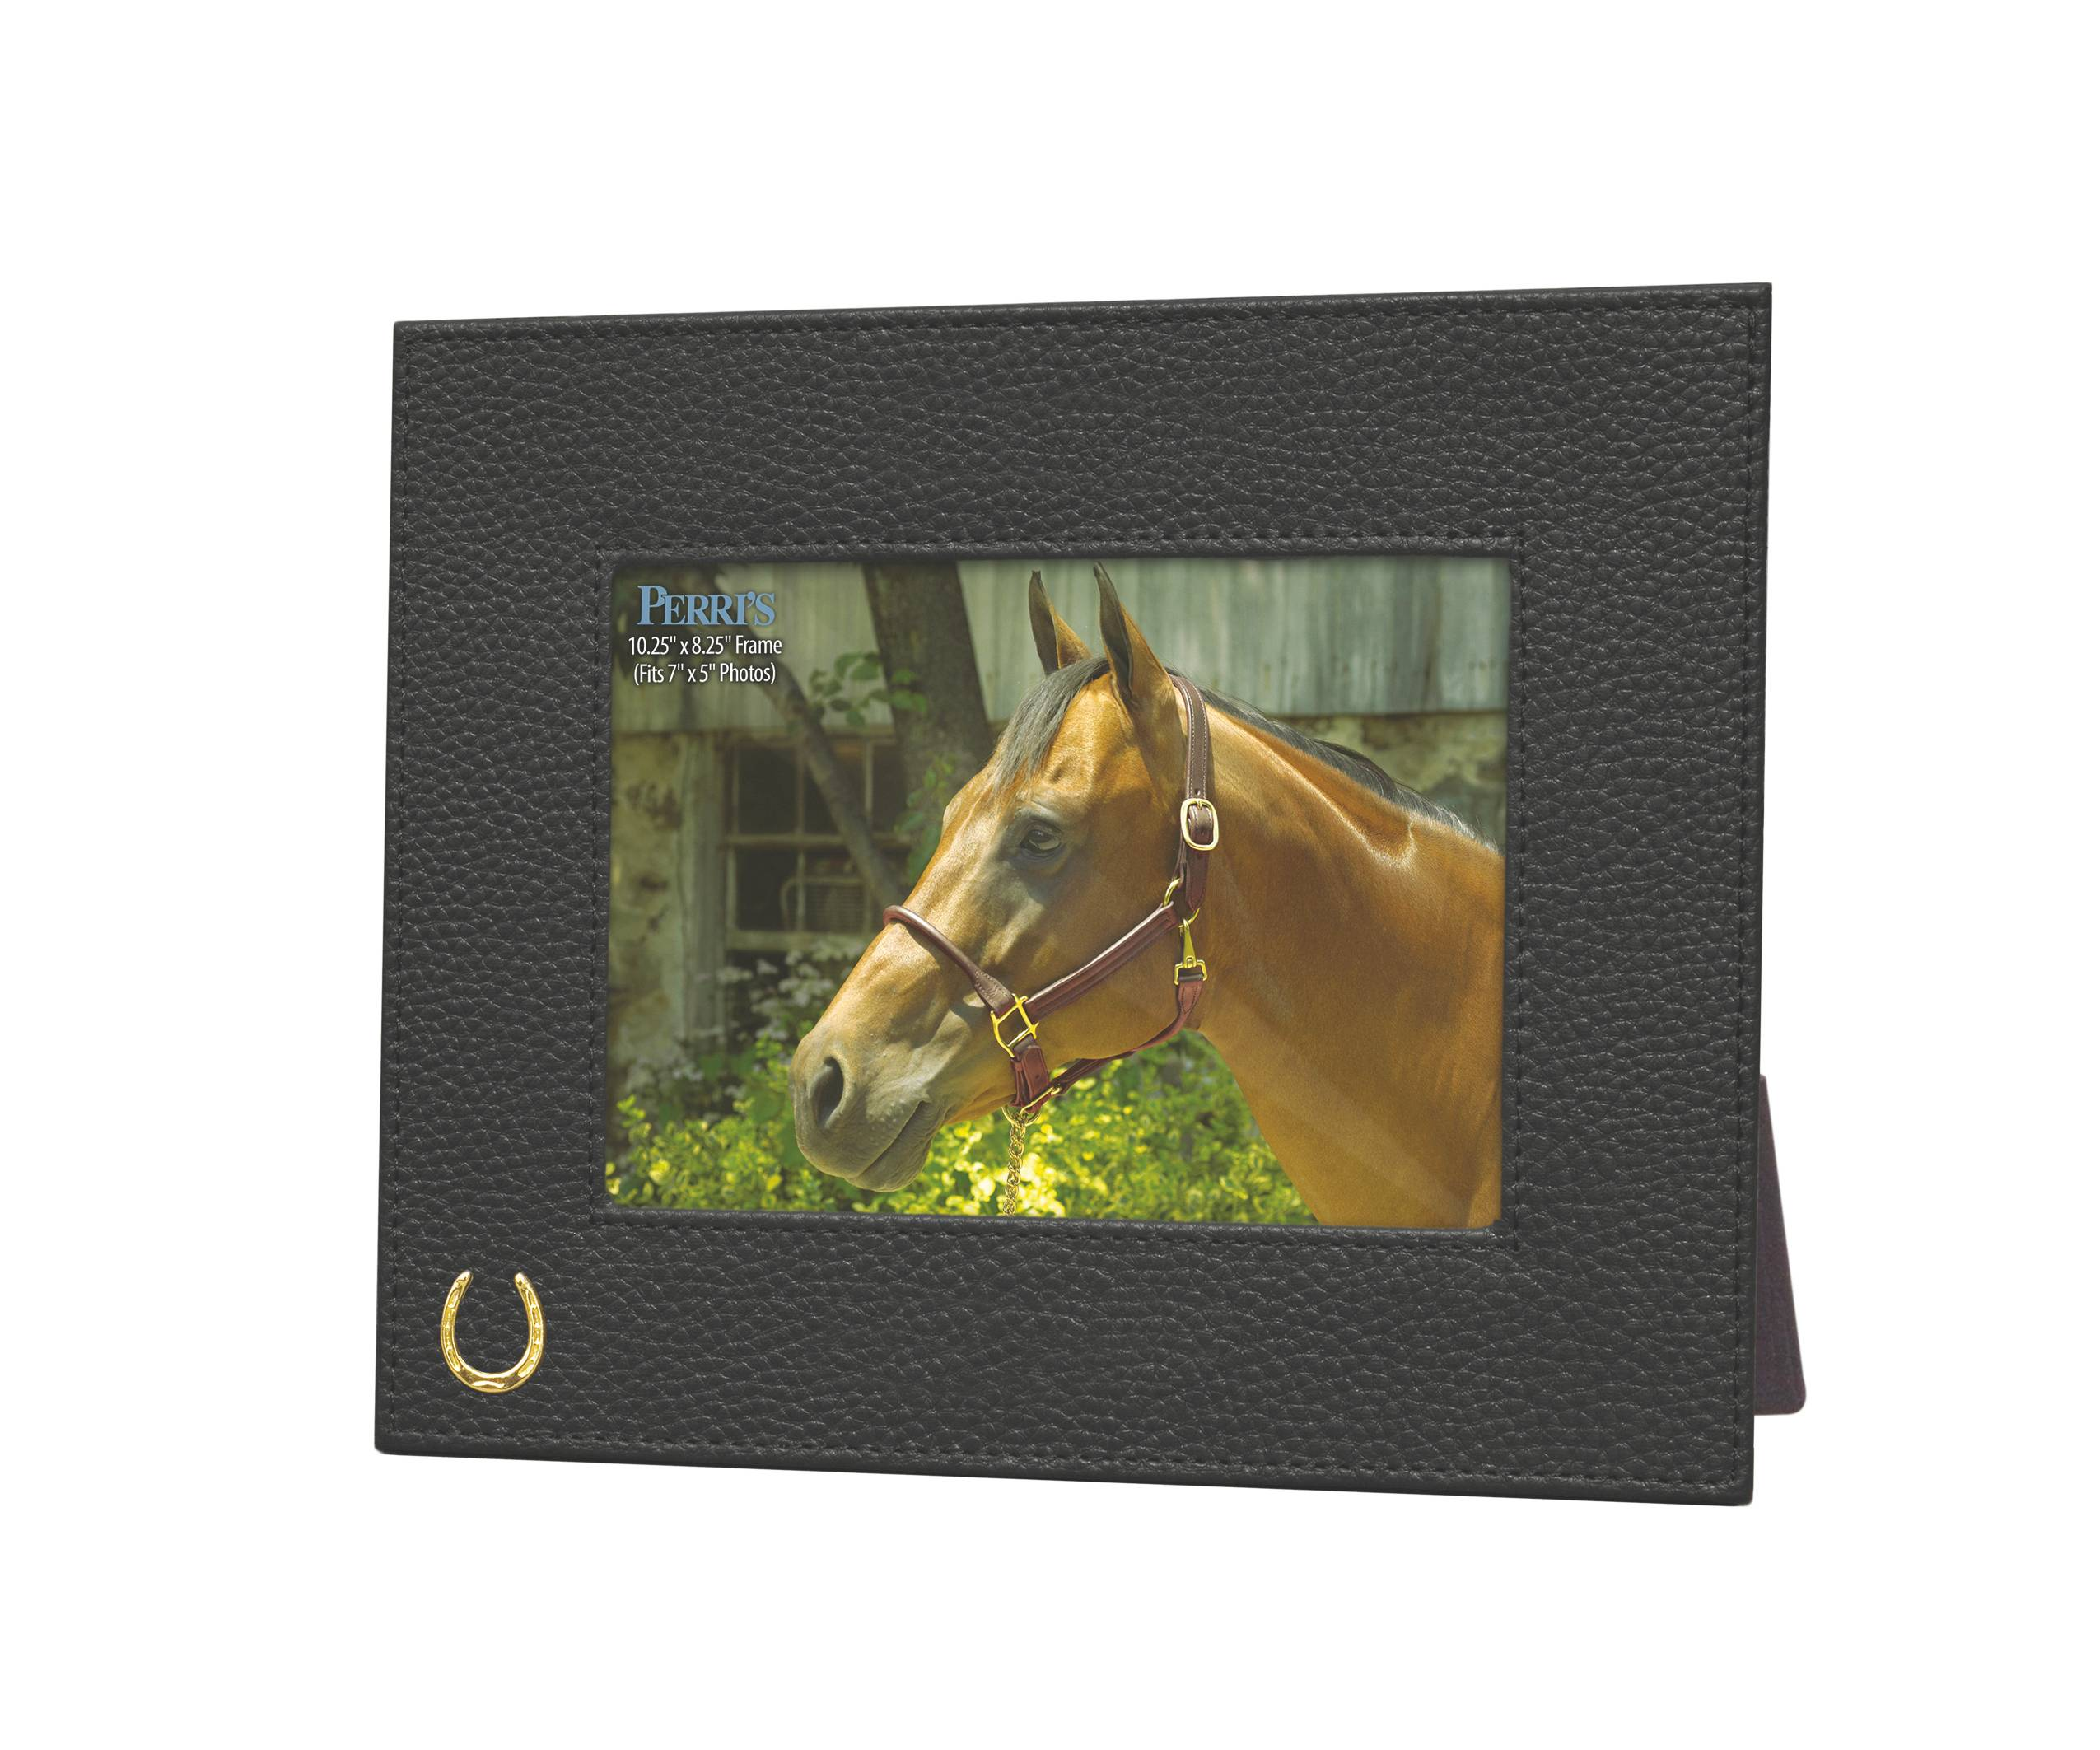 Perri's Picture Frame with Horse Shoe Accent